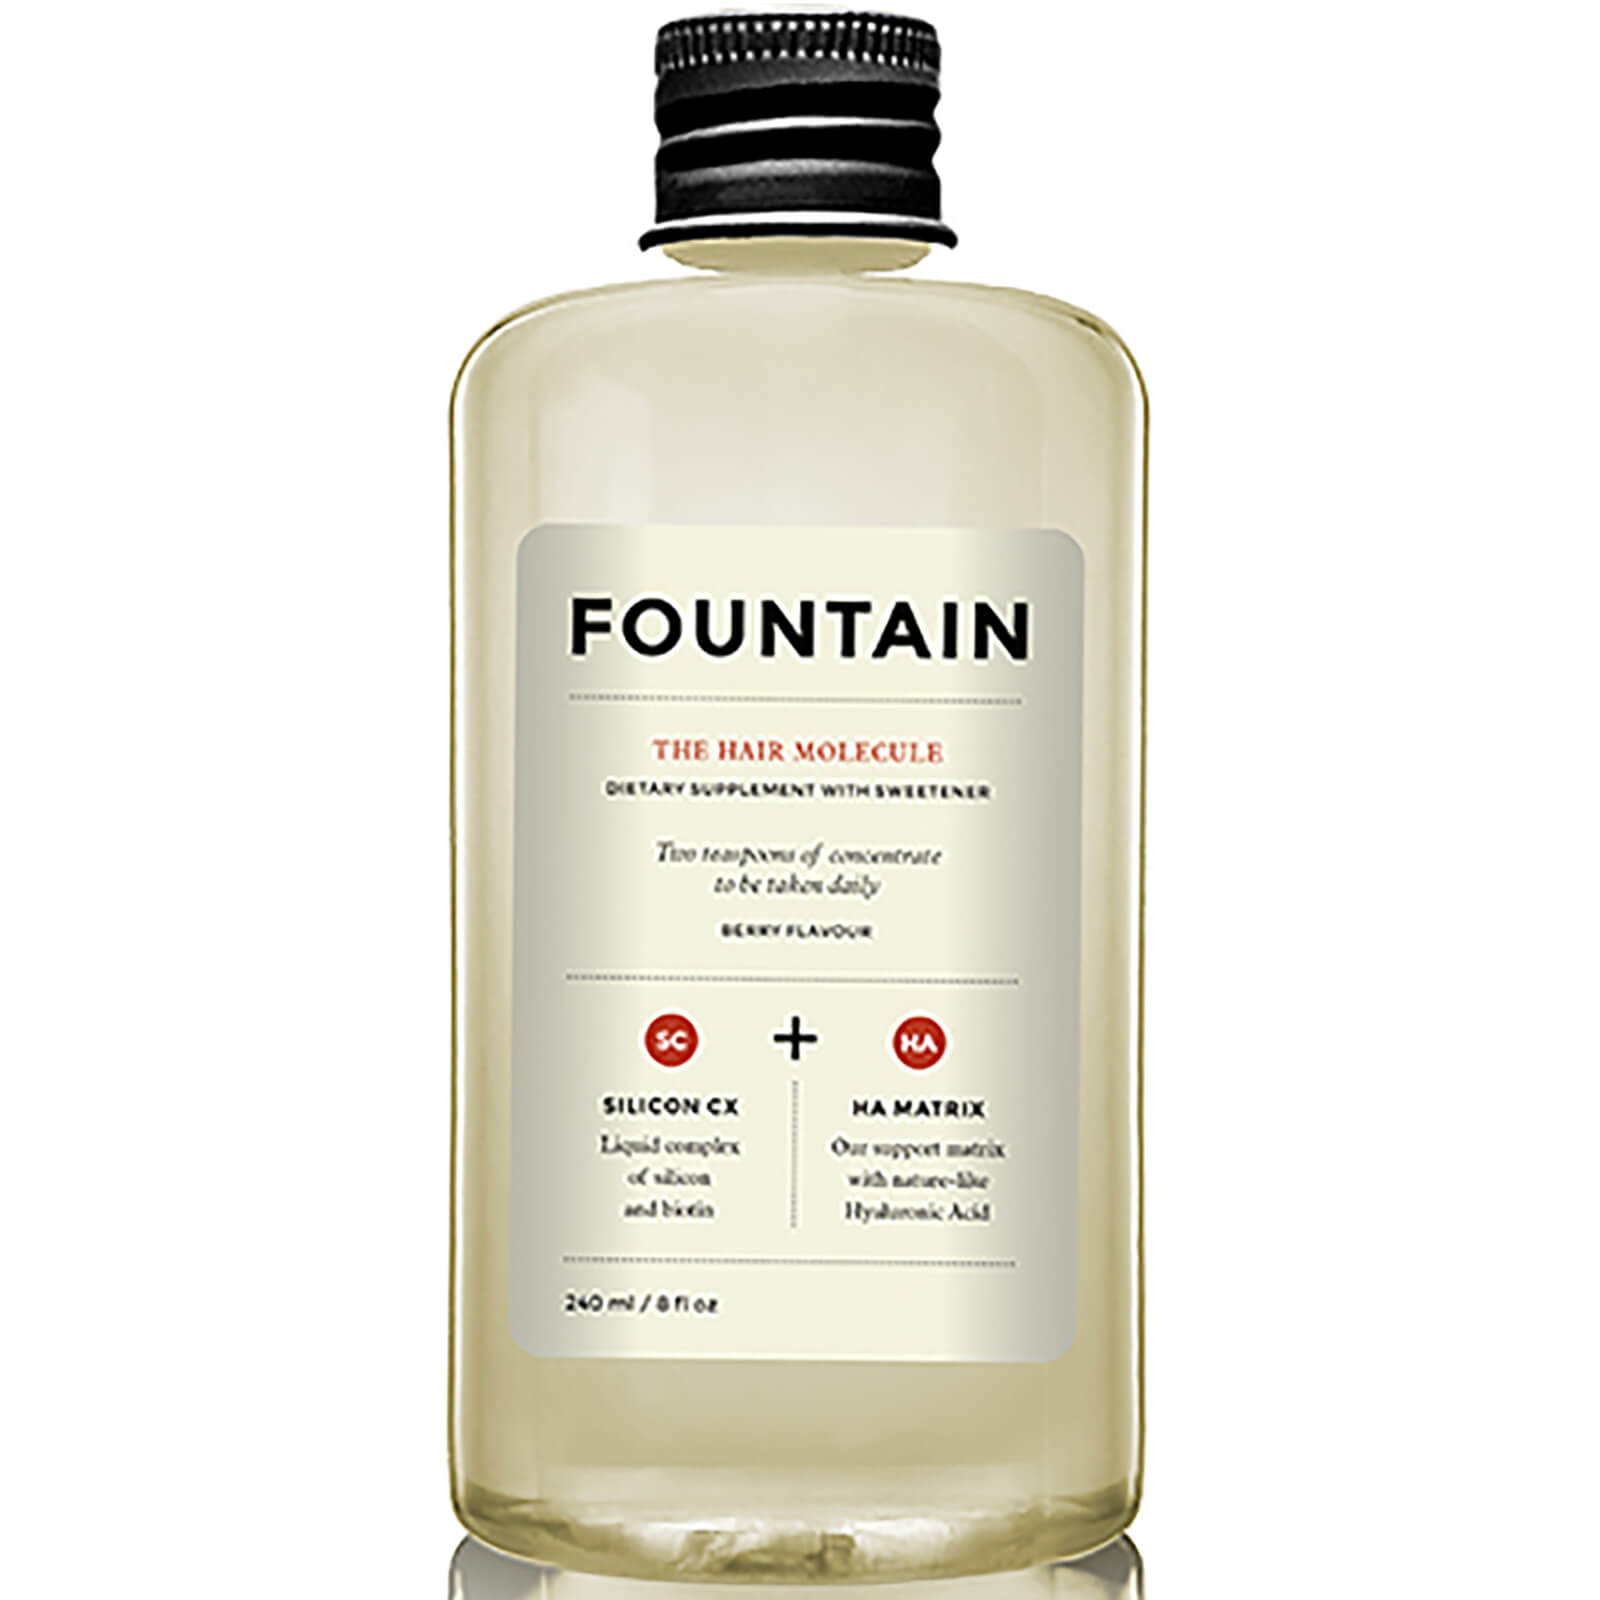 FOUNTAIN The Hair Molecule (240ml)